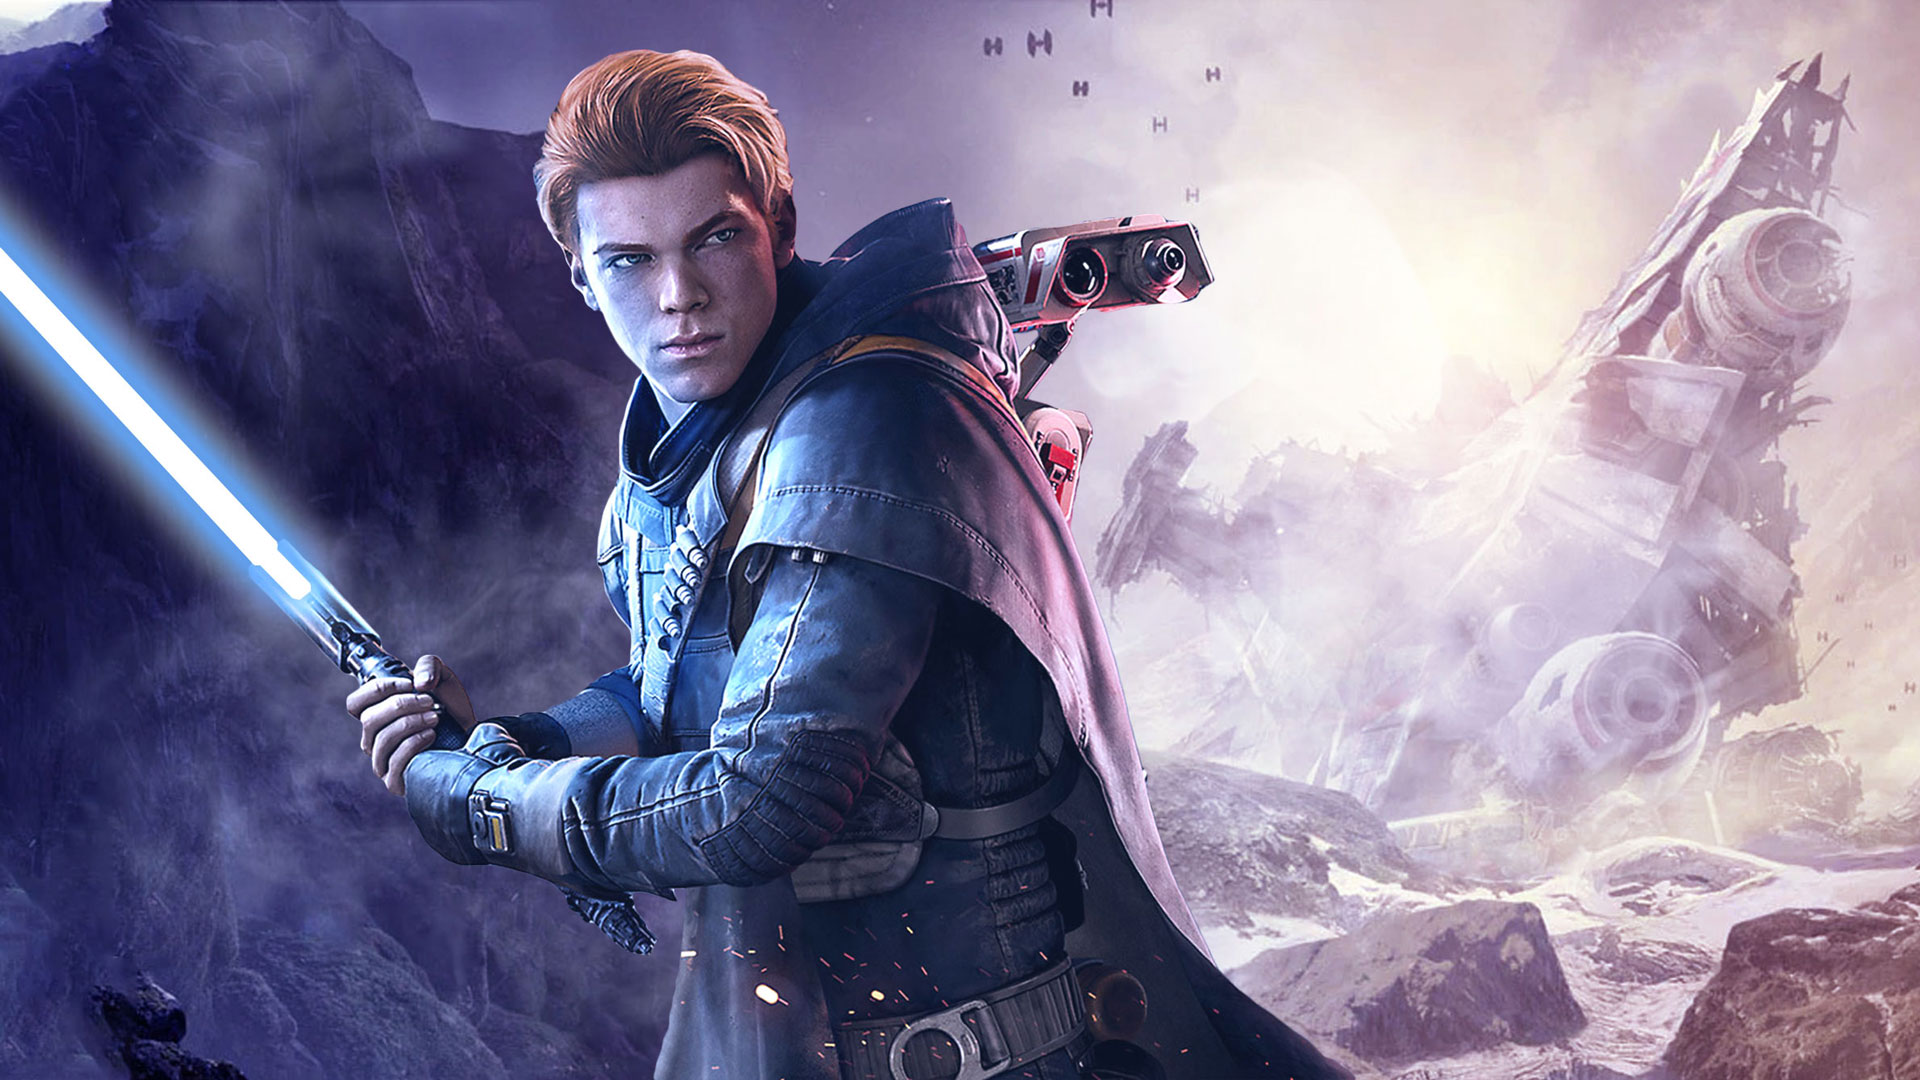 STAR WARS Jedi: Fallen Order reached over 6 million players, boosted by Origin Access and a Steam launch